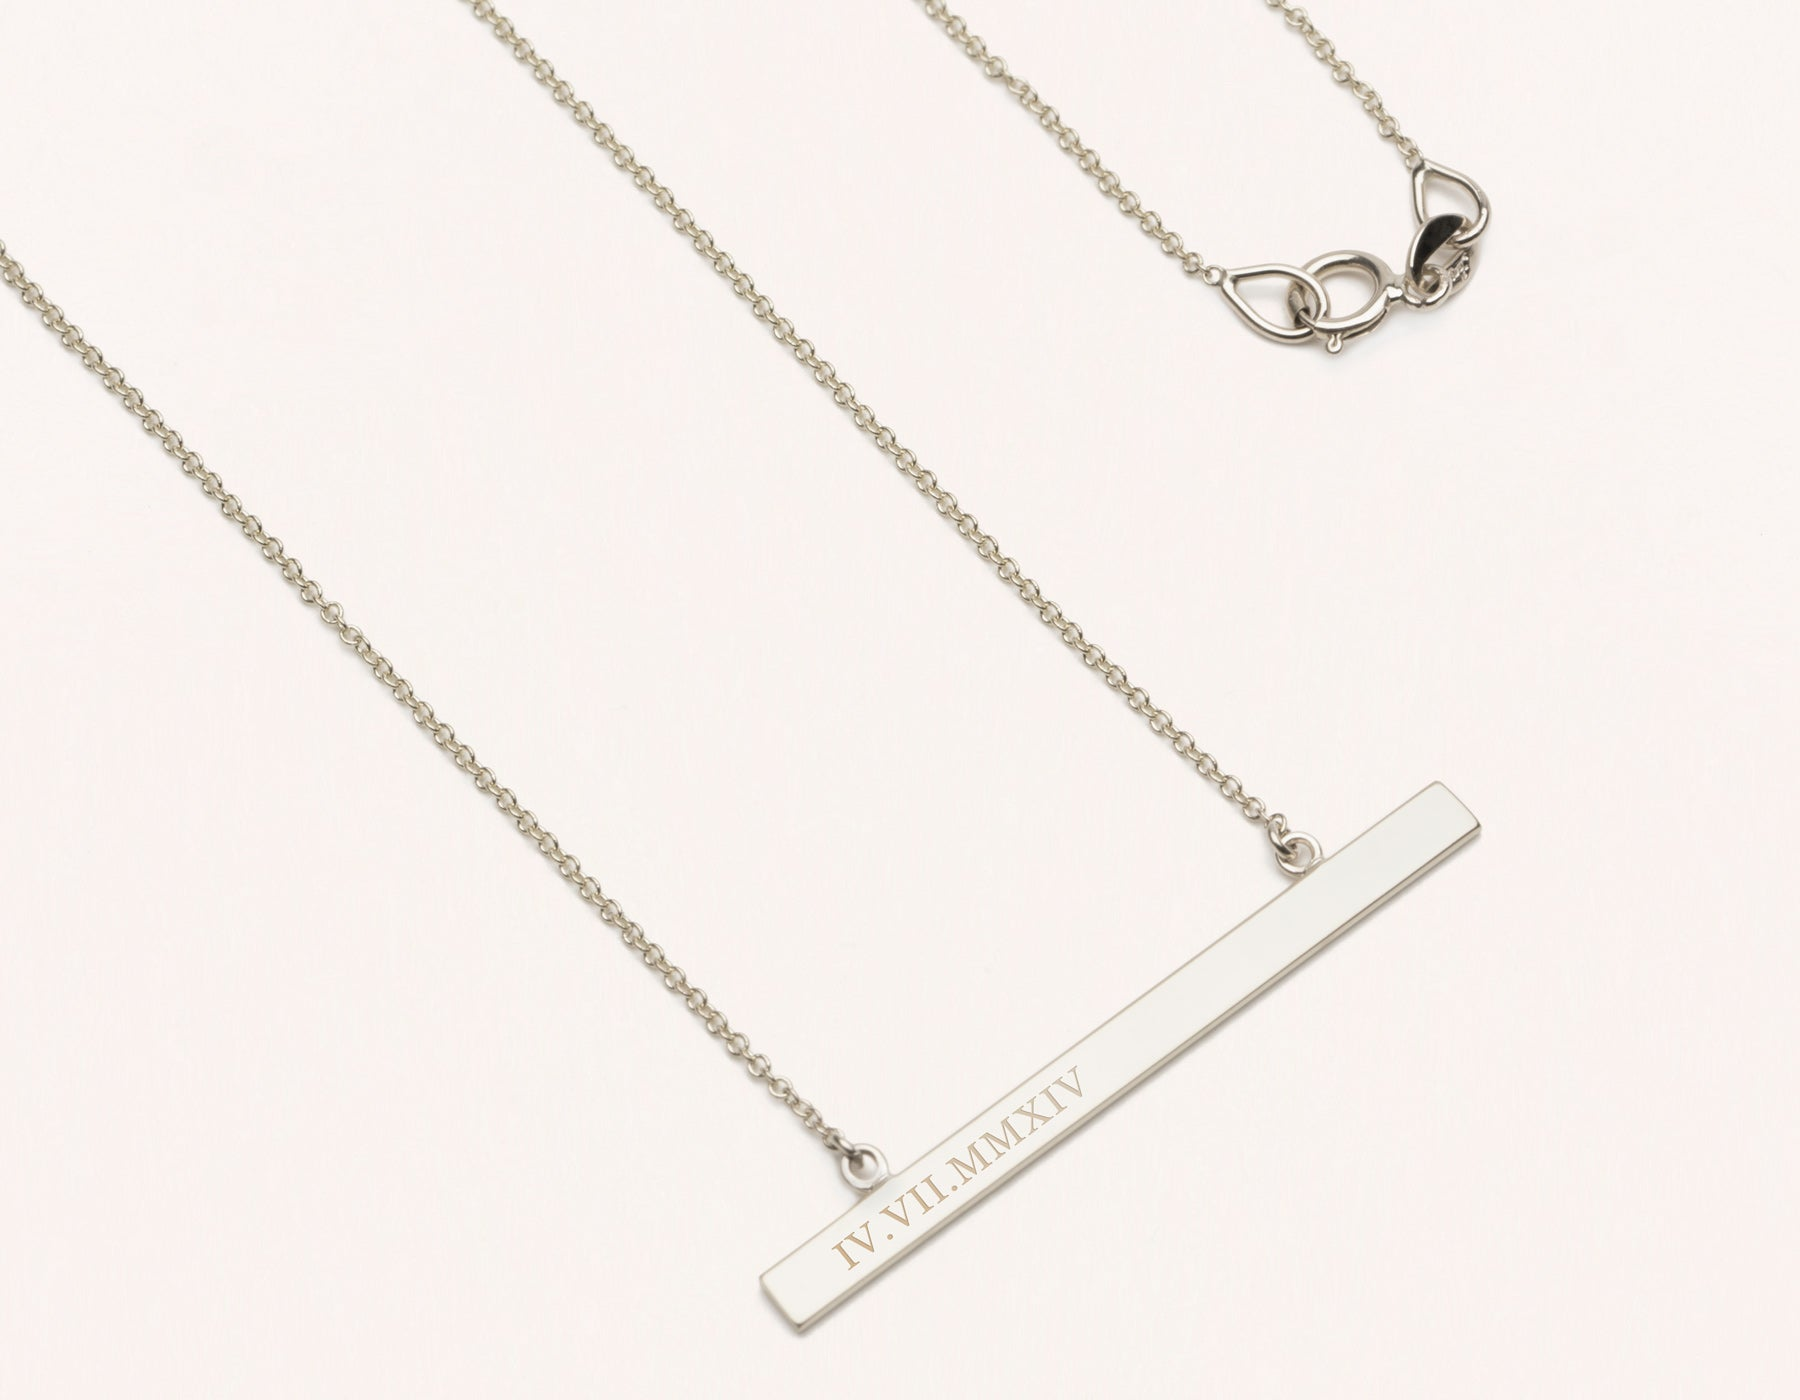 lifestyle necklace silver eco form sterling fawn triangle wild store minimal shop necklaces